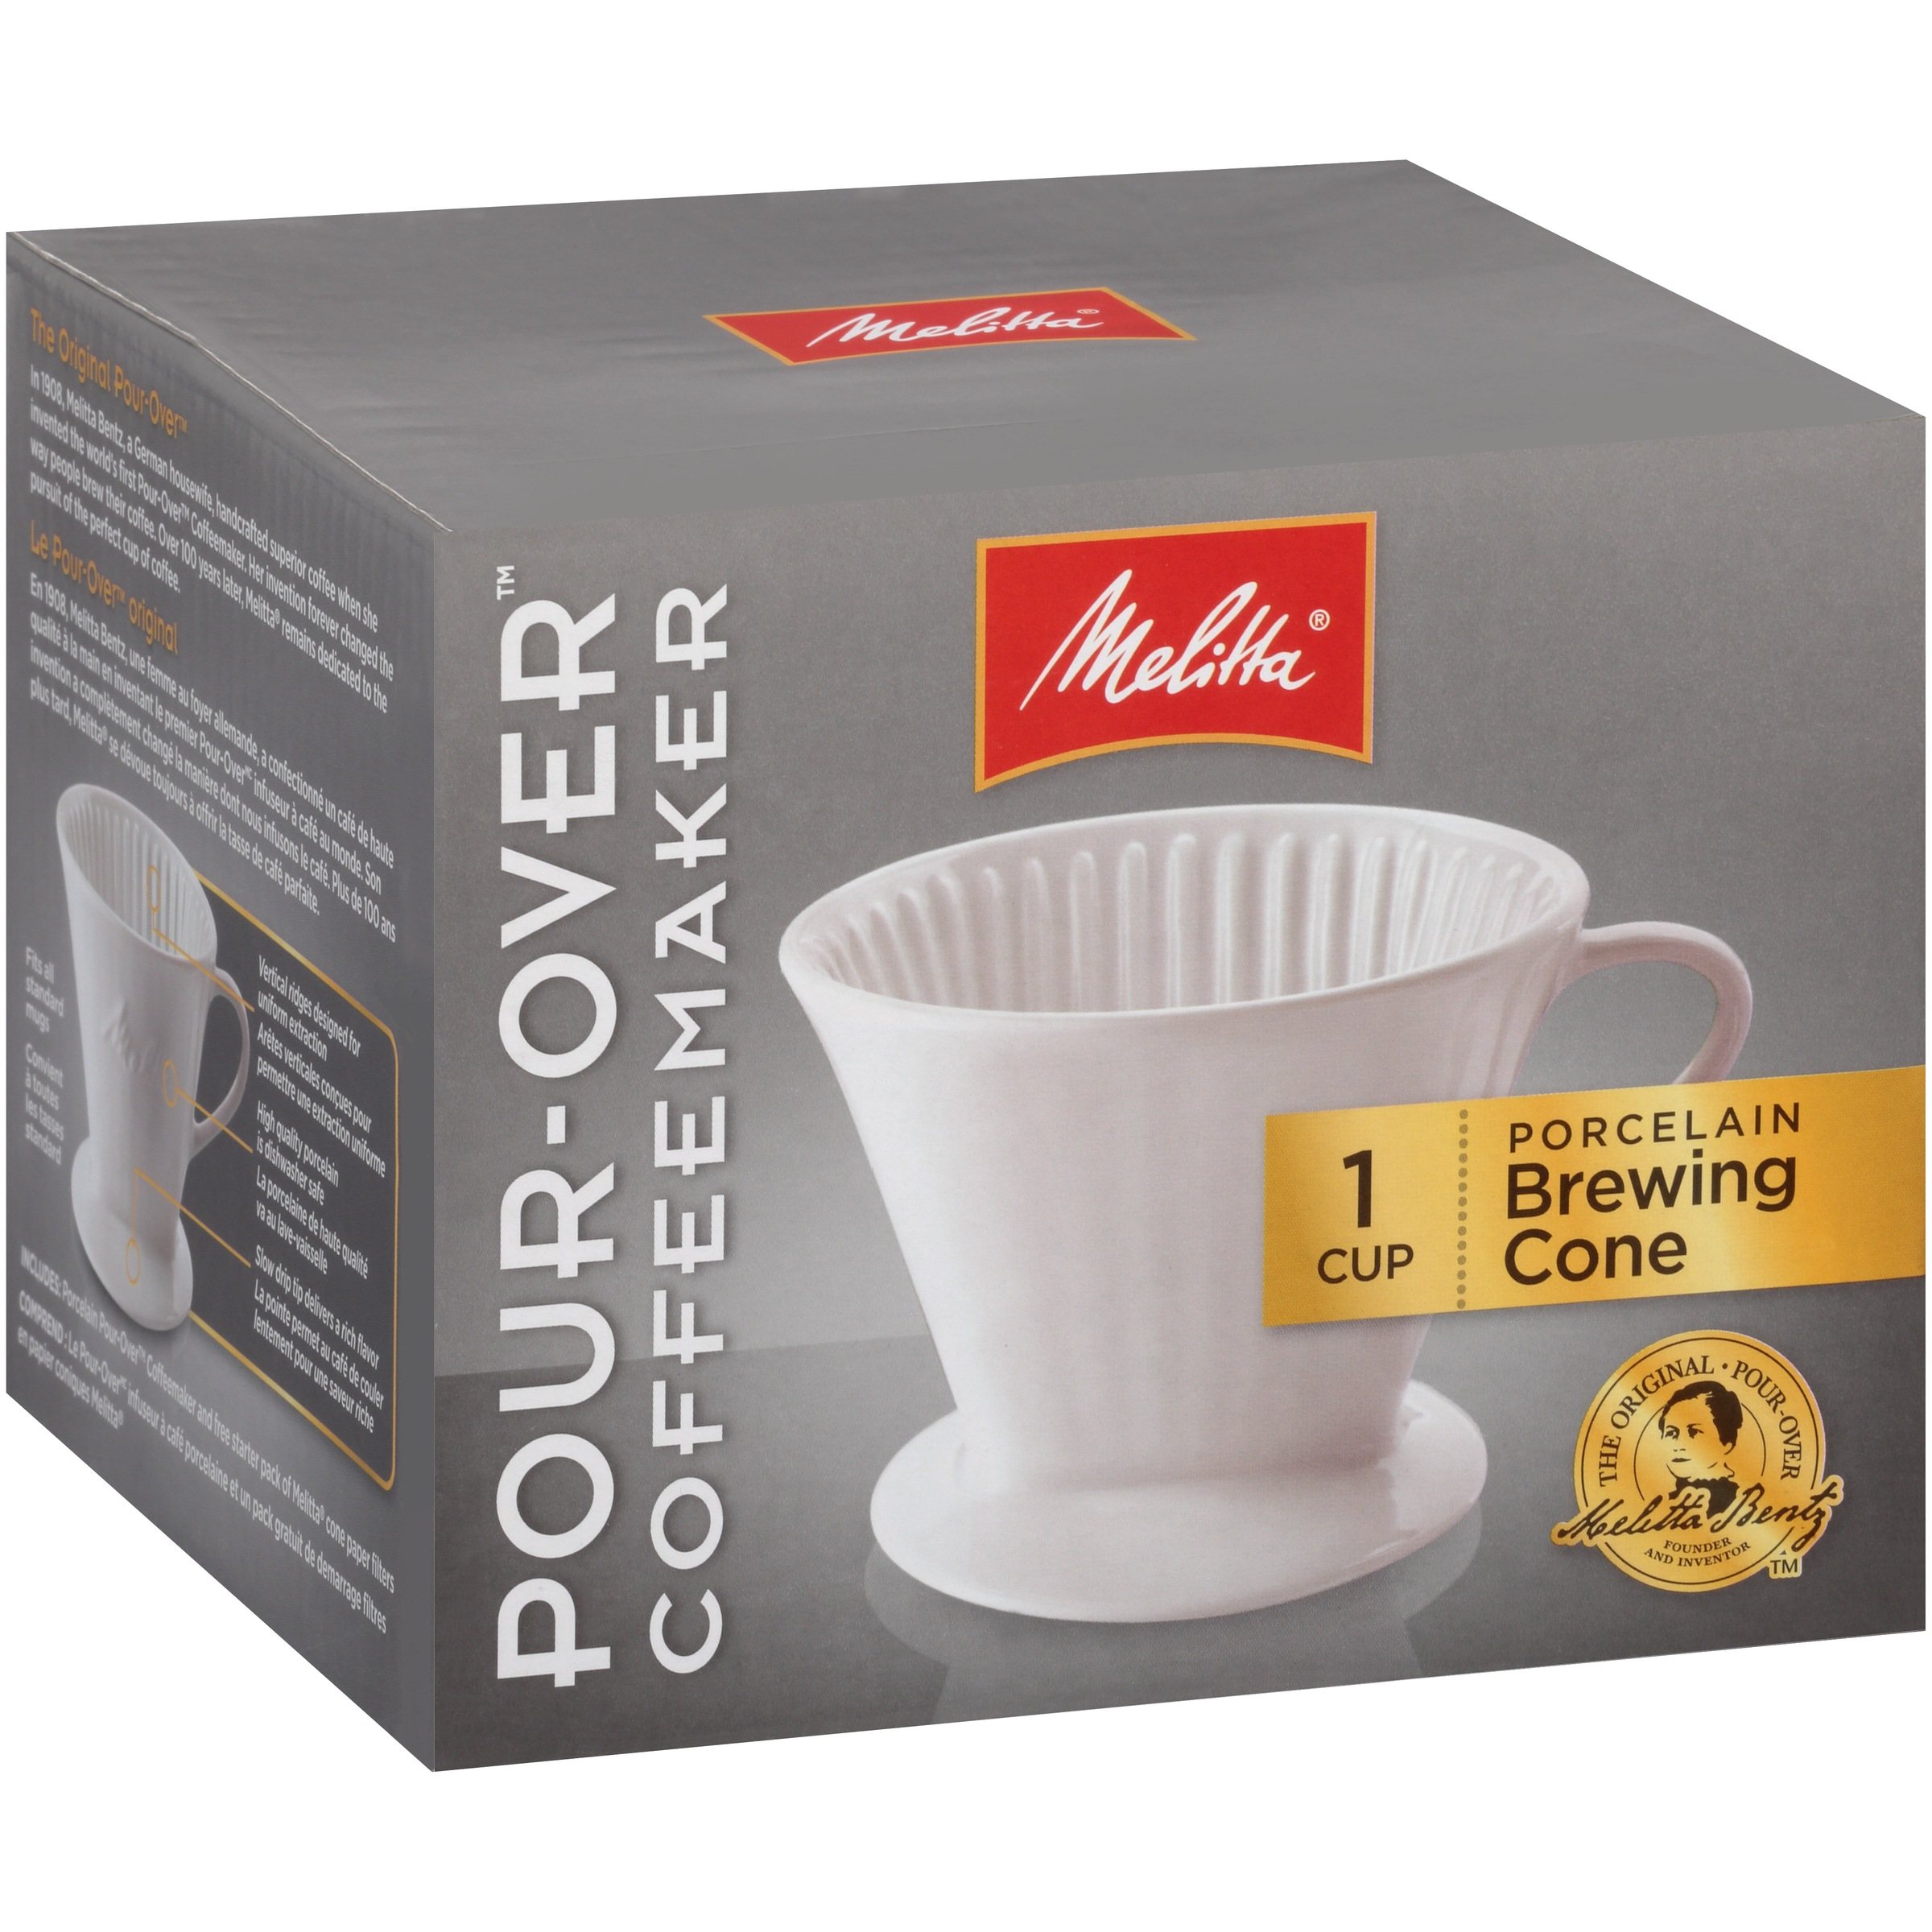 Melitta® Pour-Over™ Porcelain Single Cup Serving Coffee Brewer Box